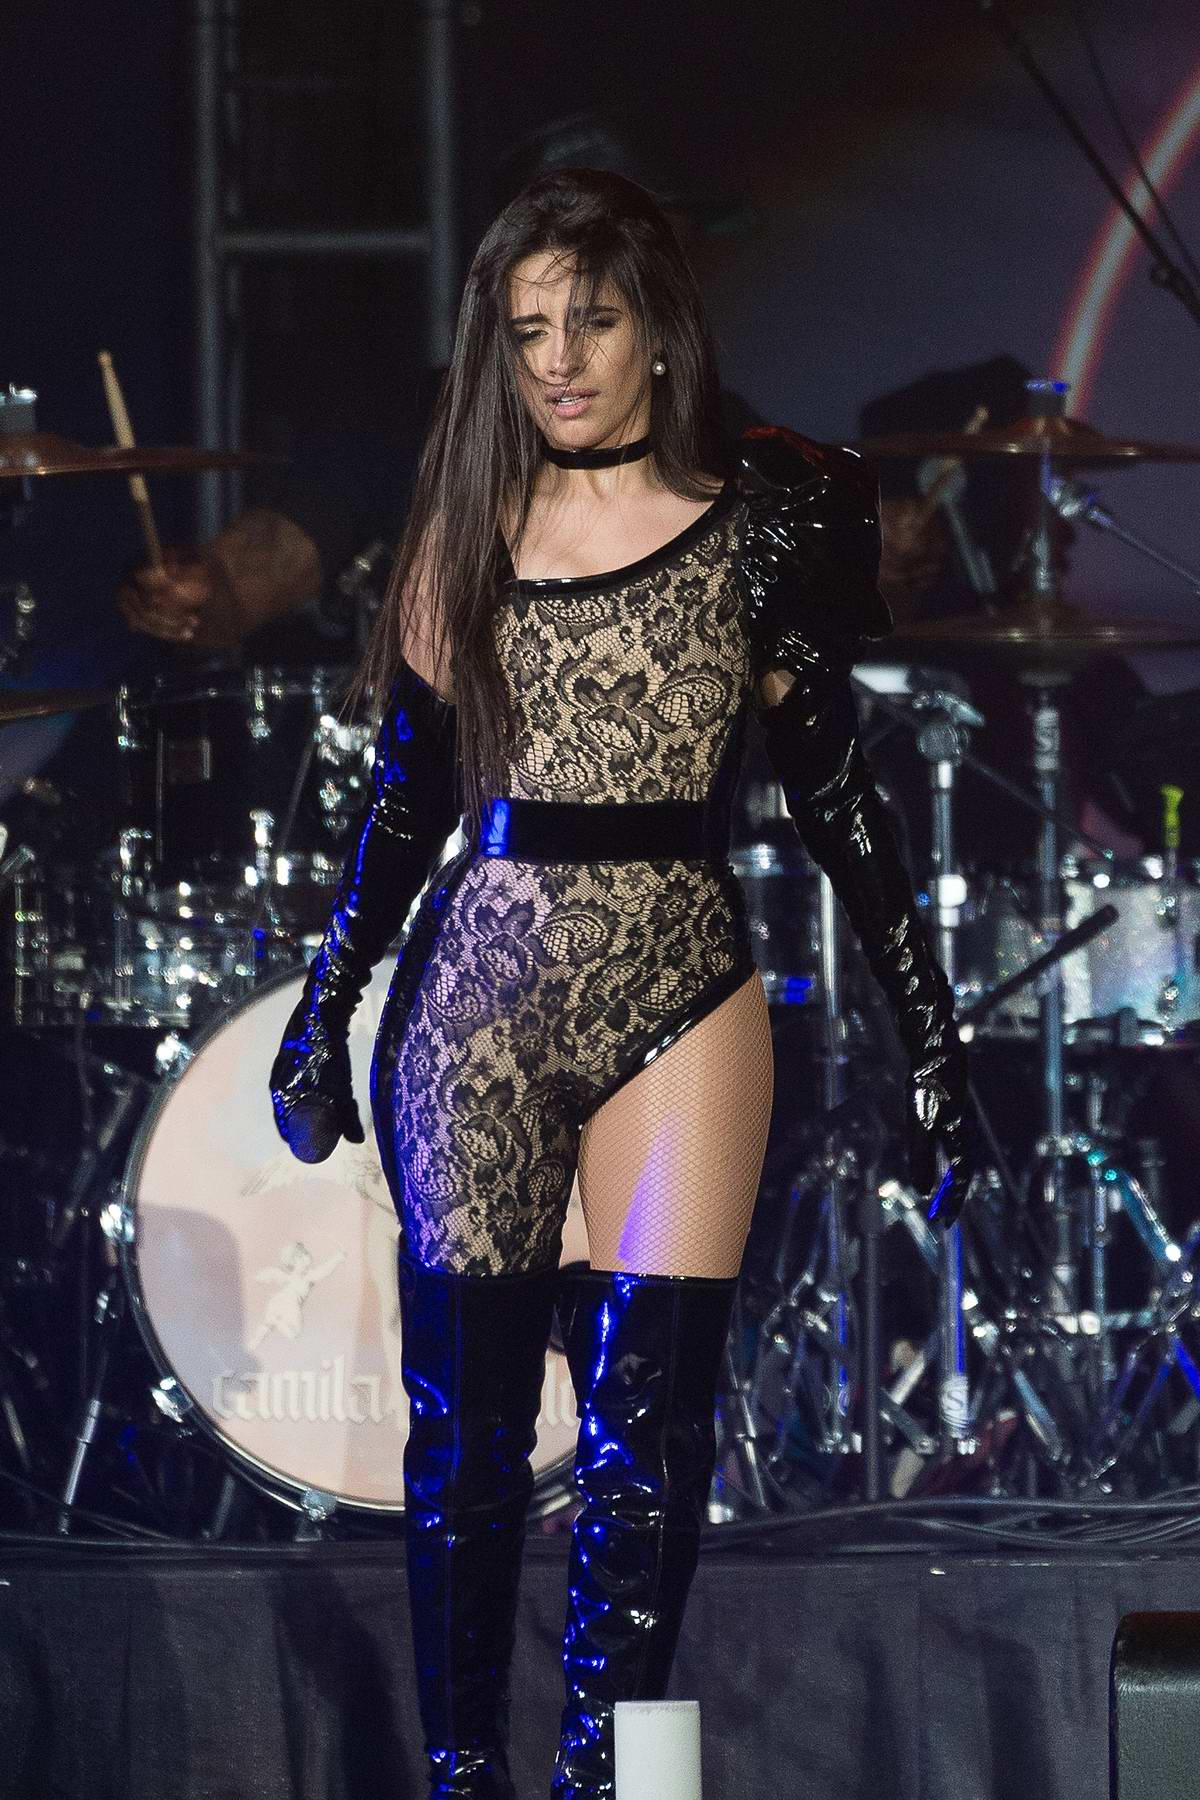 Camila Cabello performs during the B96 Jingle Bash at the Allstate Arena in Chicago, IL